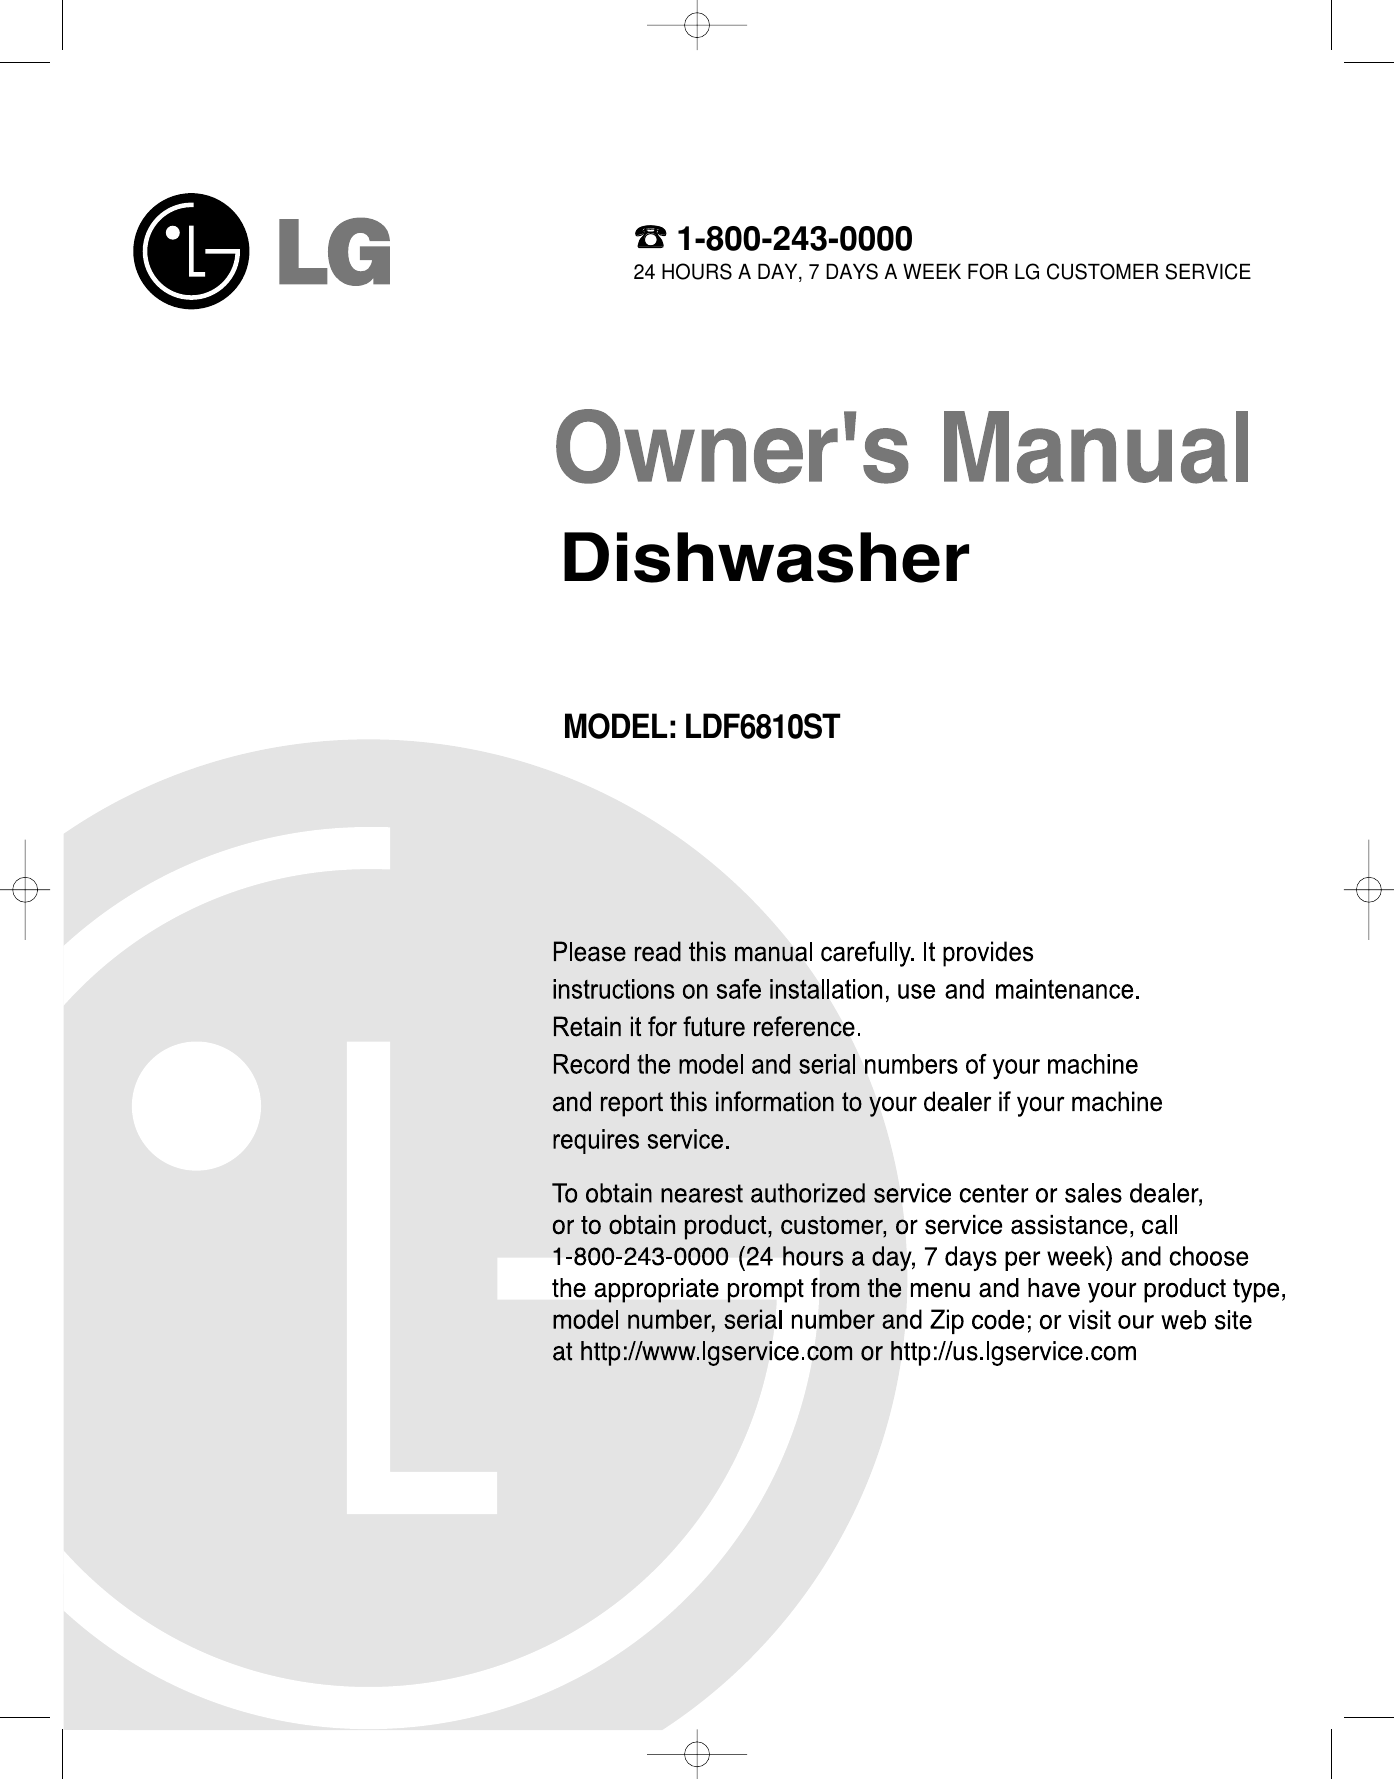 Contact Nearest Authorized Lg Service Center – Meta Morphoz